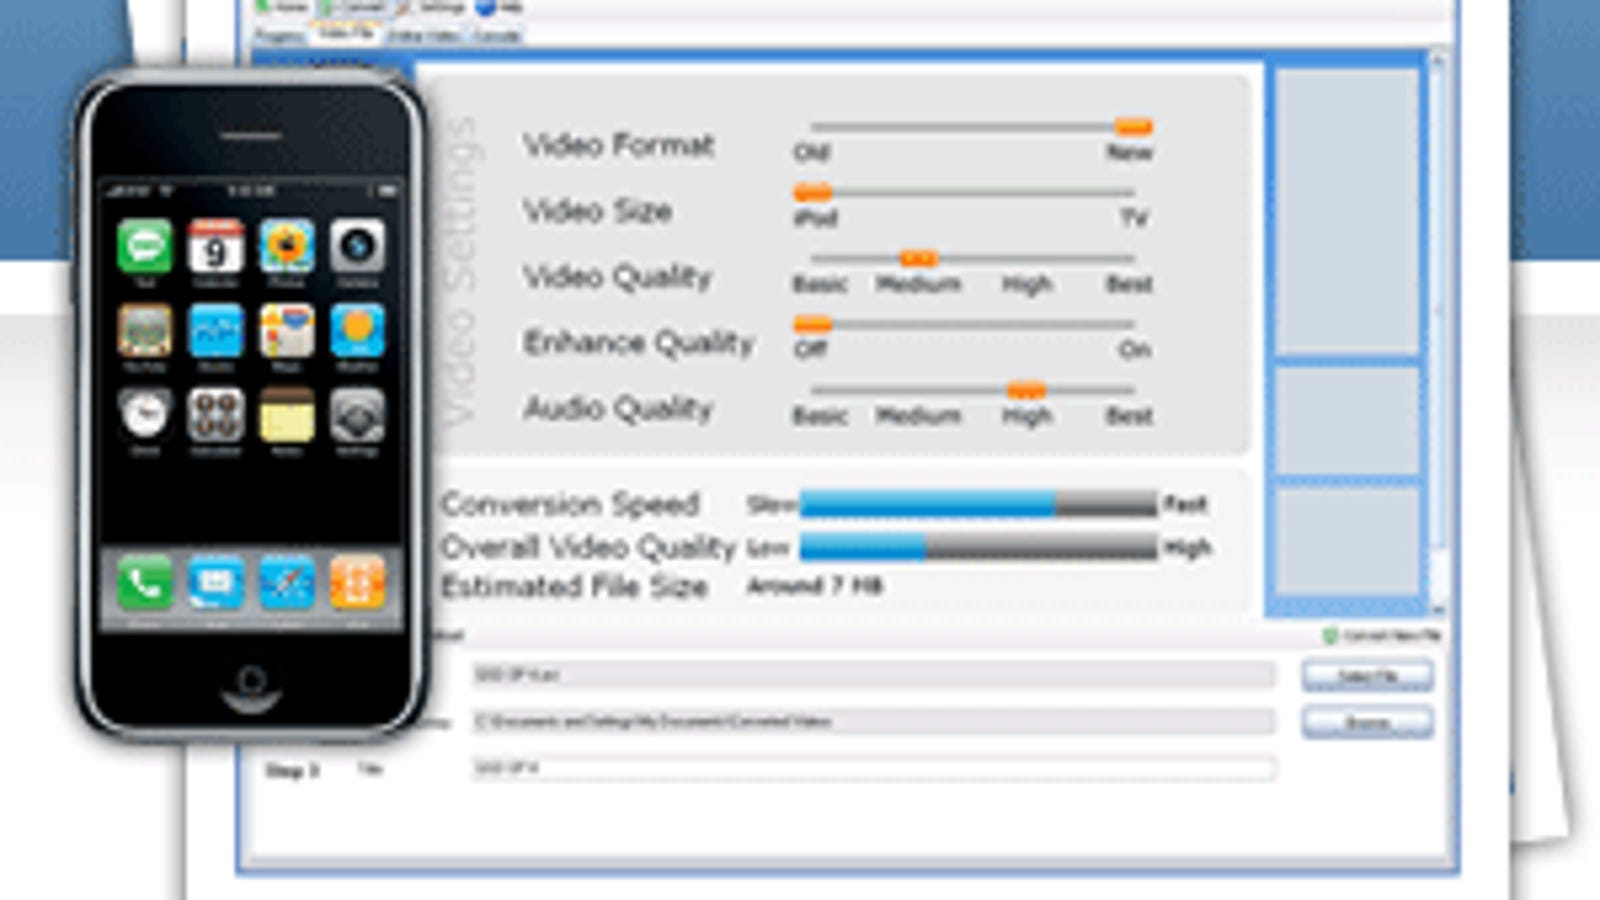 videora iphone 3g converter